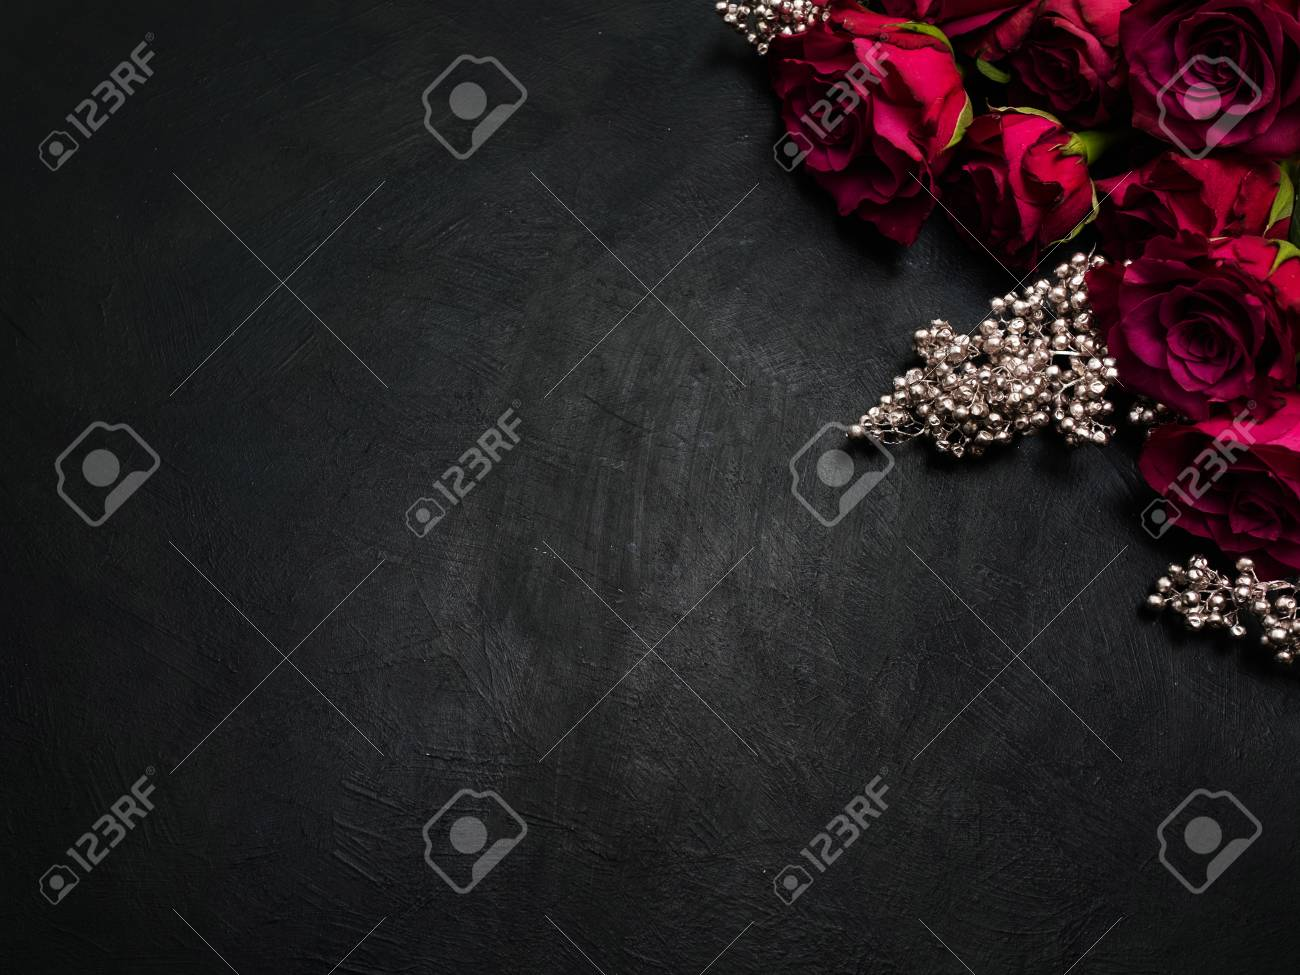 Burgundy Or Wine Red Roses And Silver Decor On Dark Background 1300x975